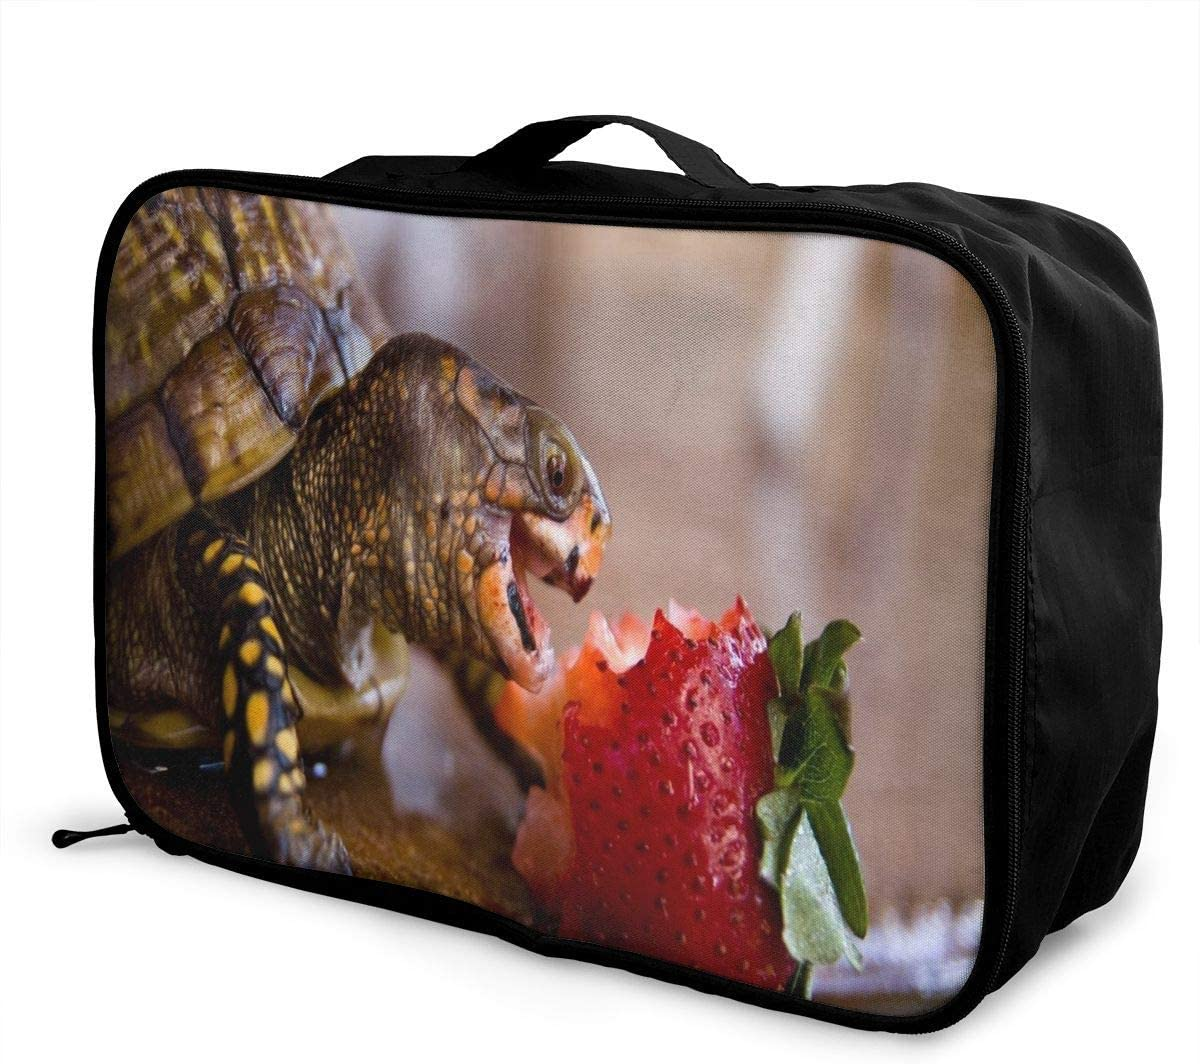 Travel Bags Turtle Eating Strawberry Portable Suitcase Trolley Handle Luggage Bag